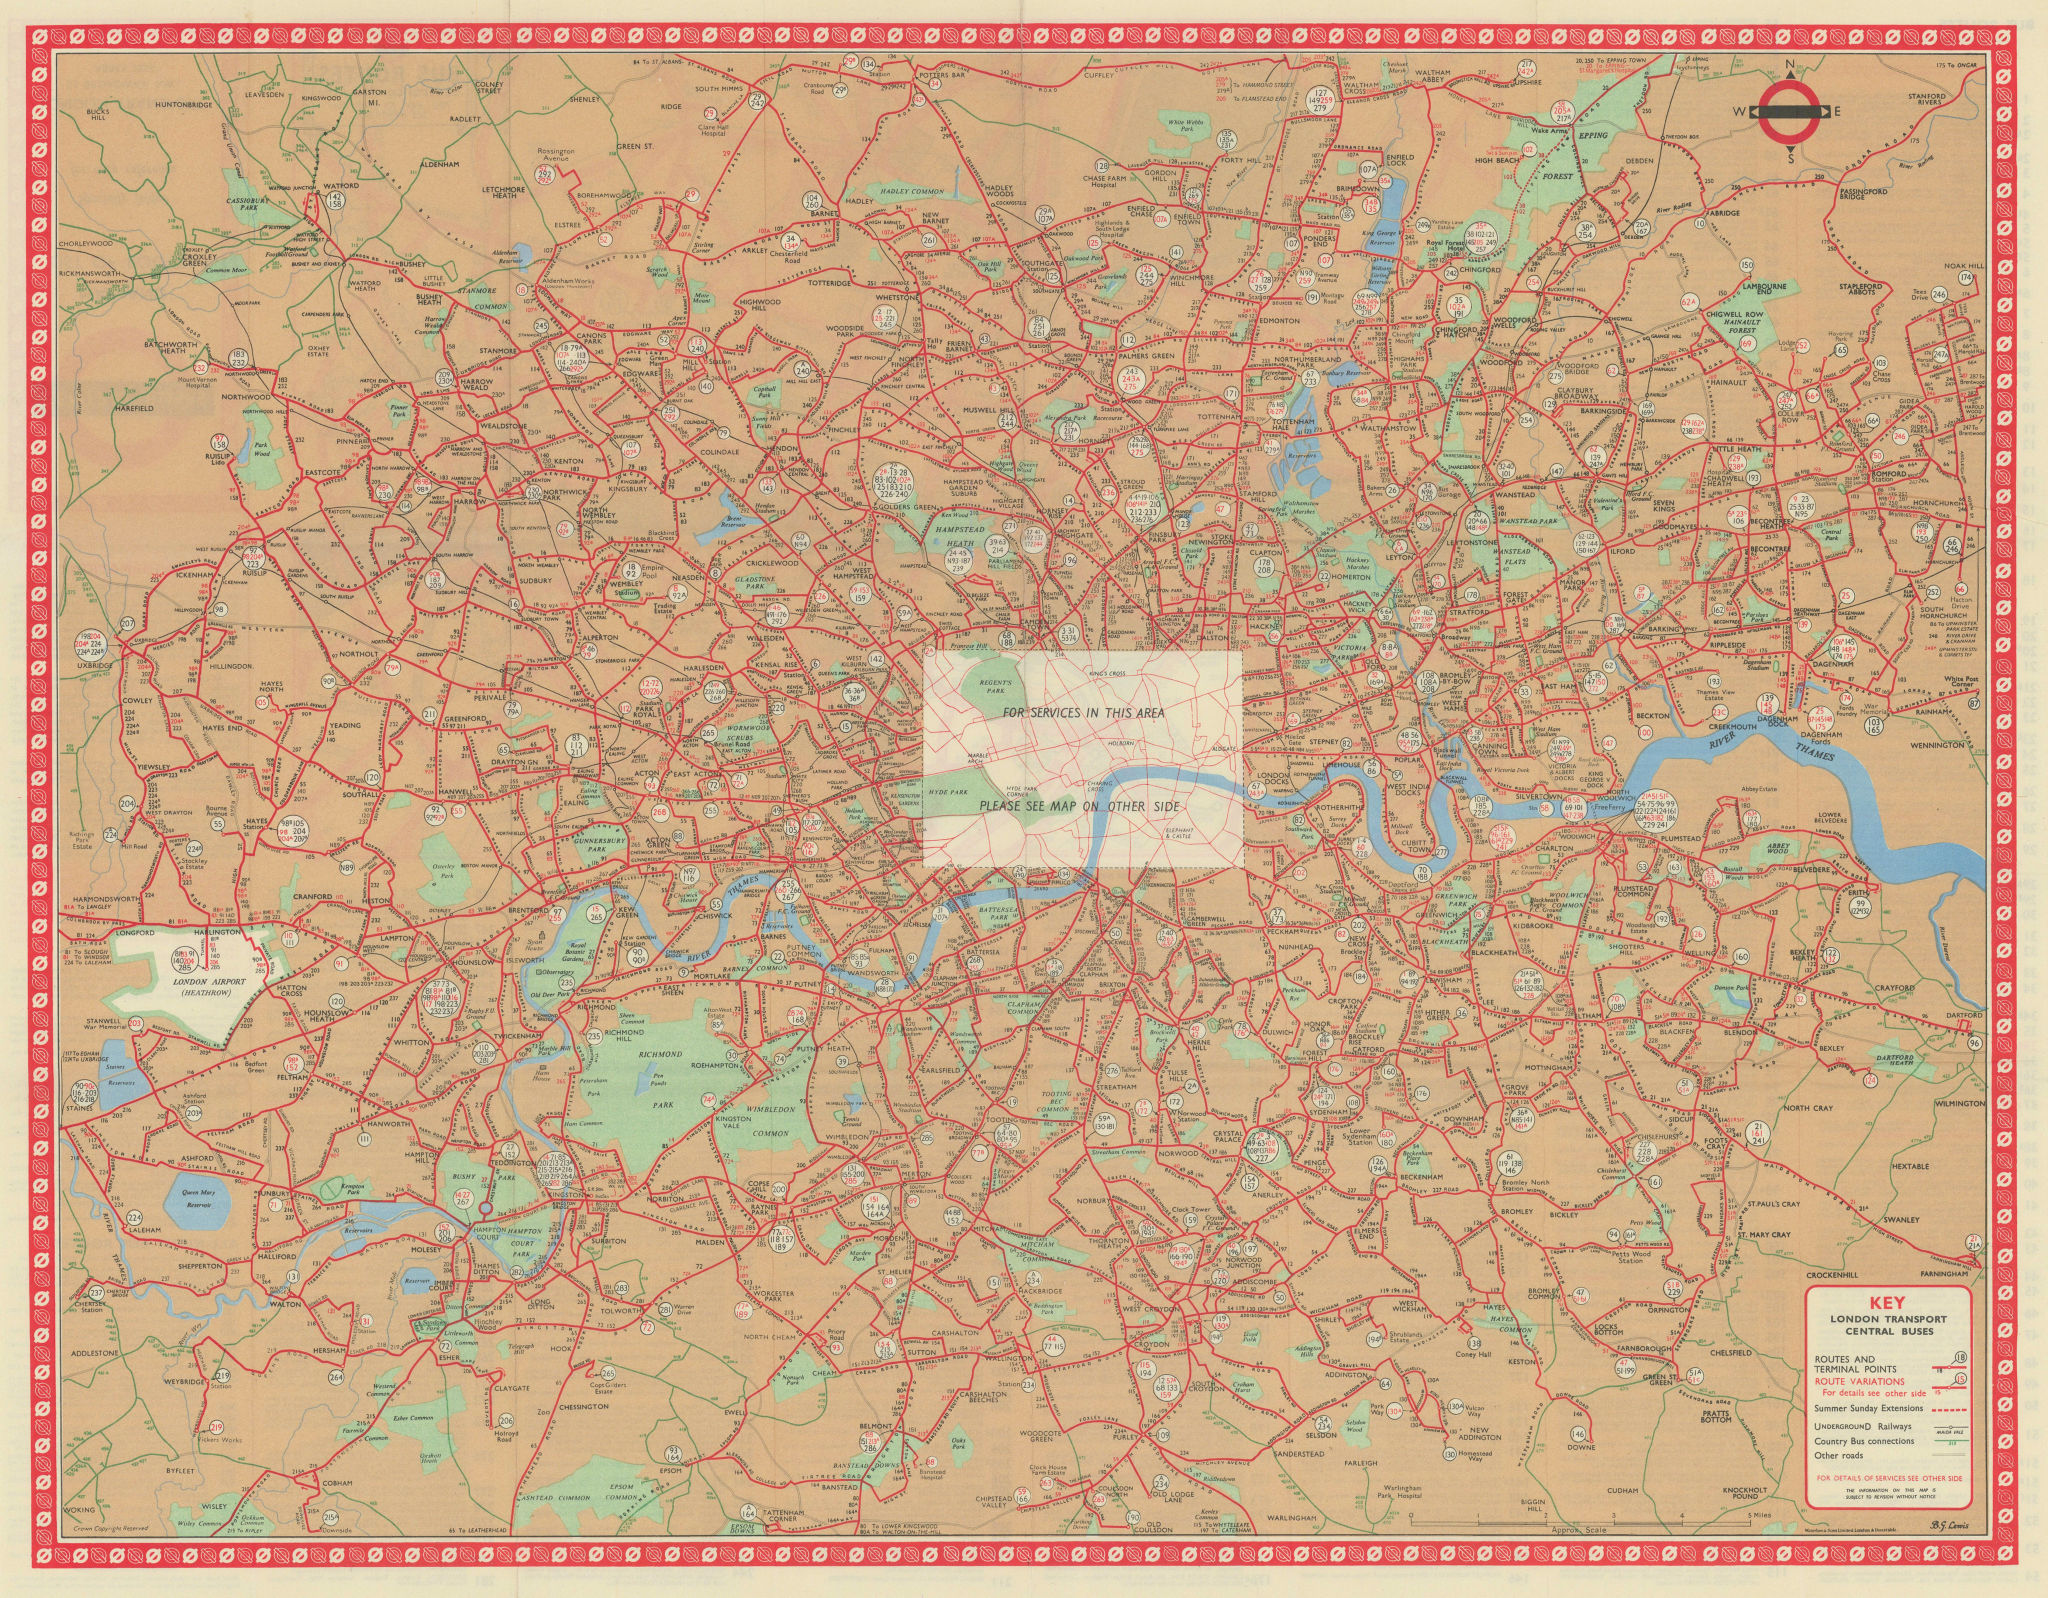 London Transport Central Buses map and list of routes. LEWIS #2 1963 old